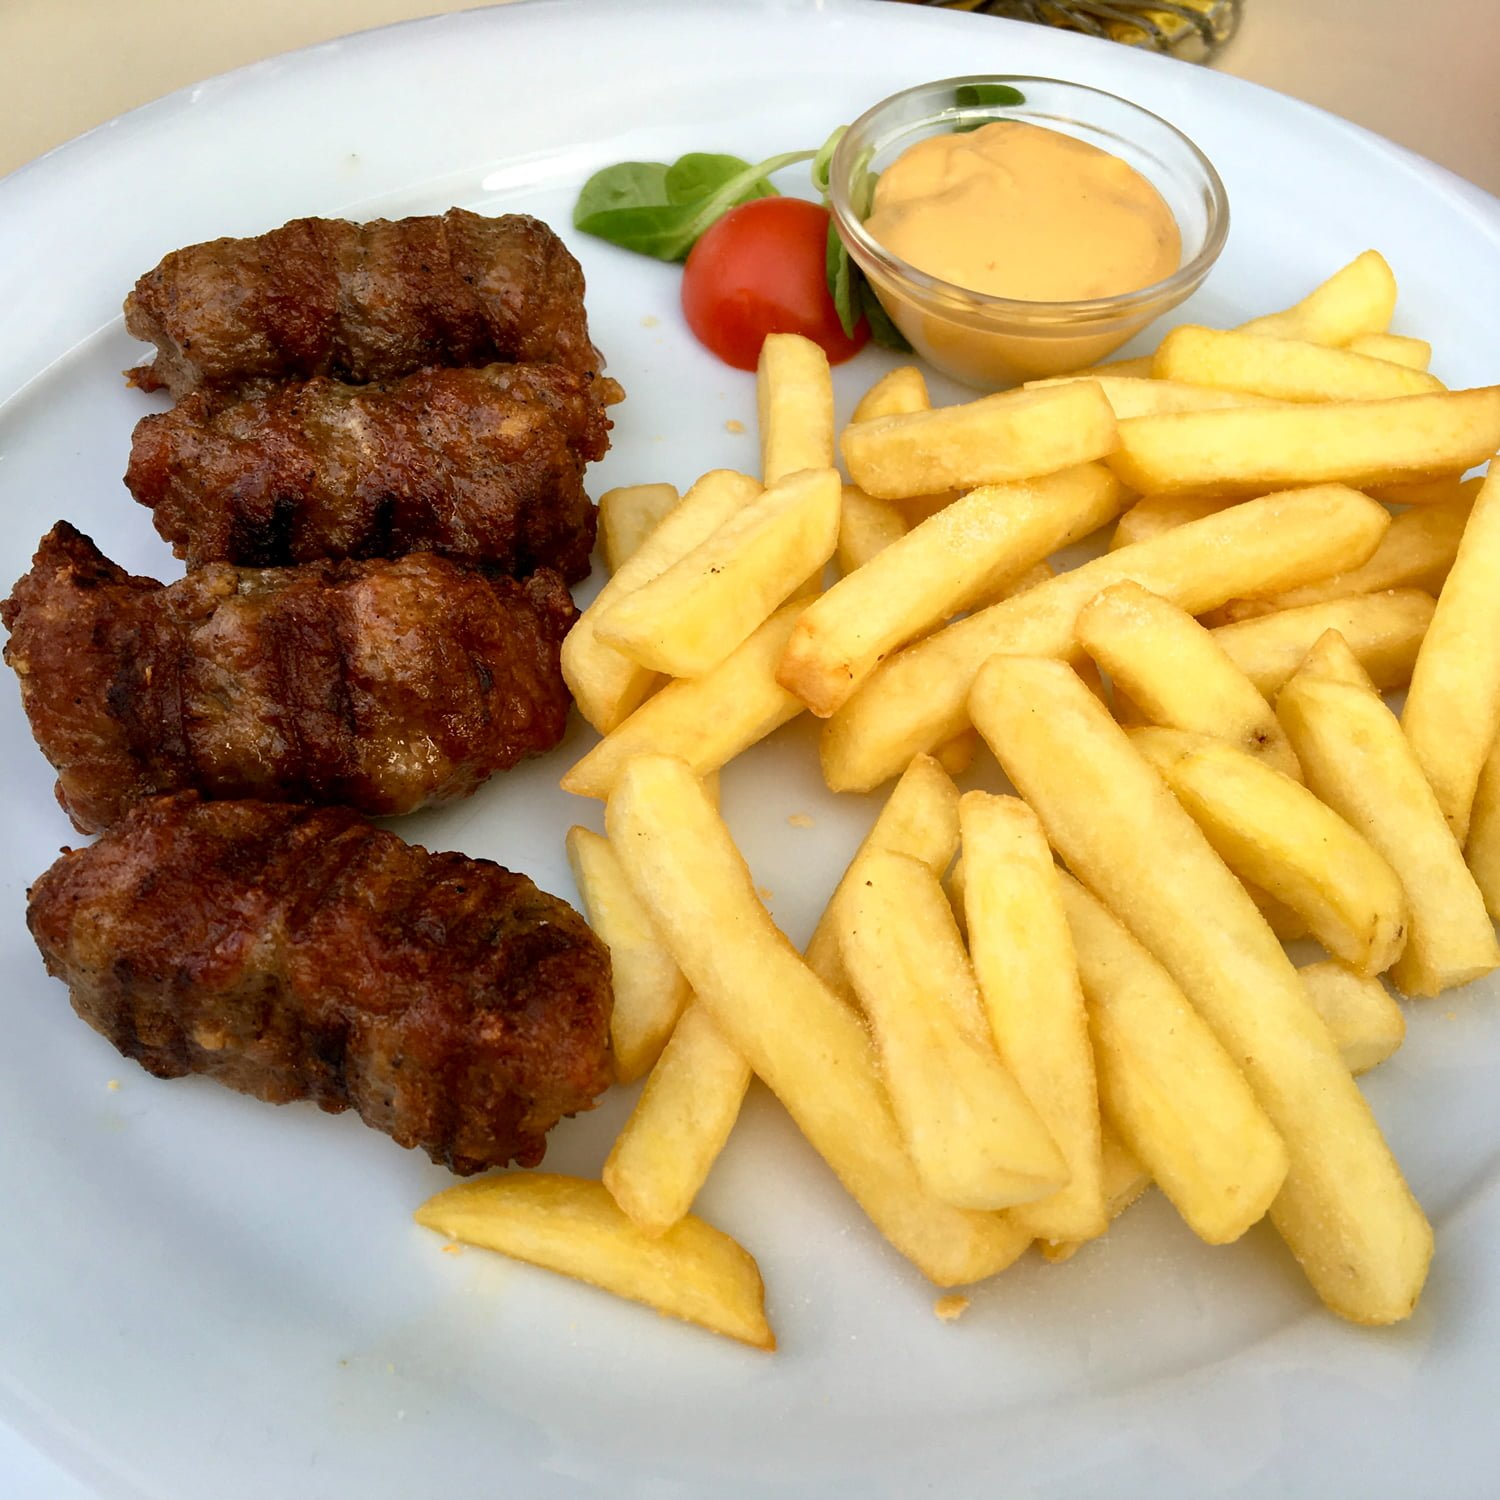 Mititei- Authentic Romanian Grilled Sausages- featured pictures